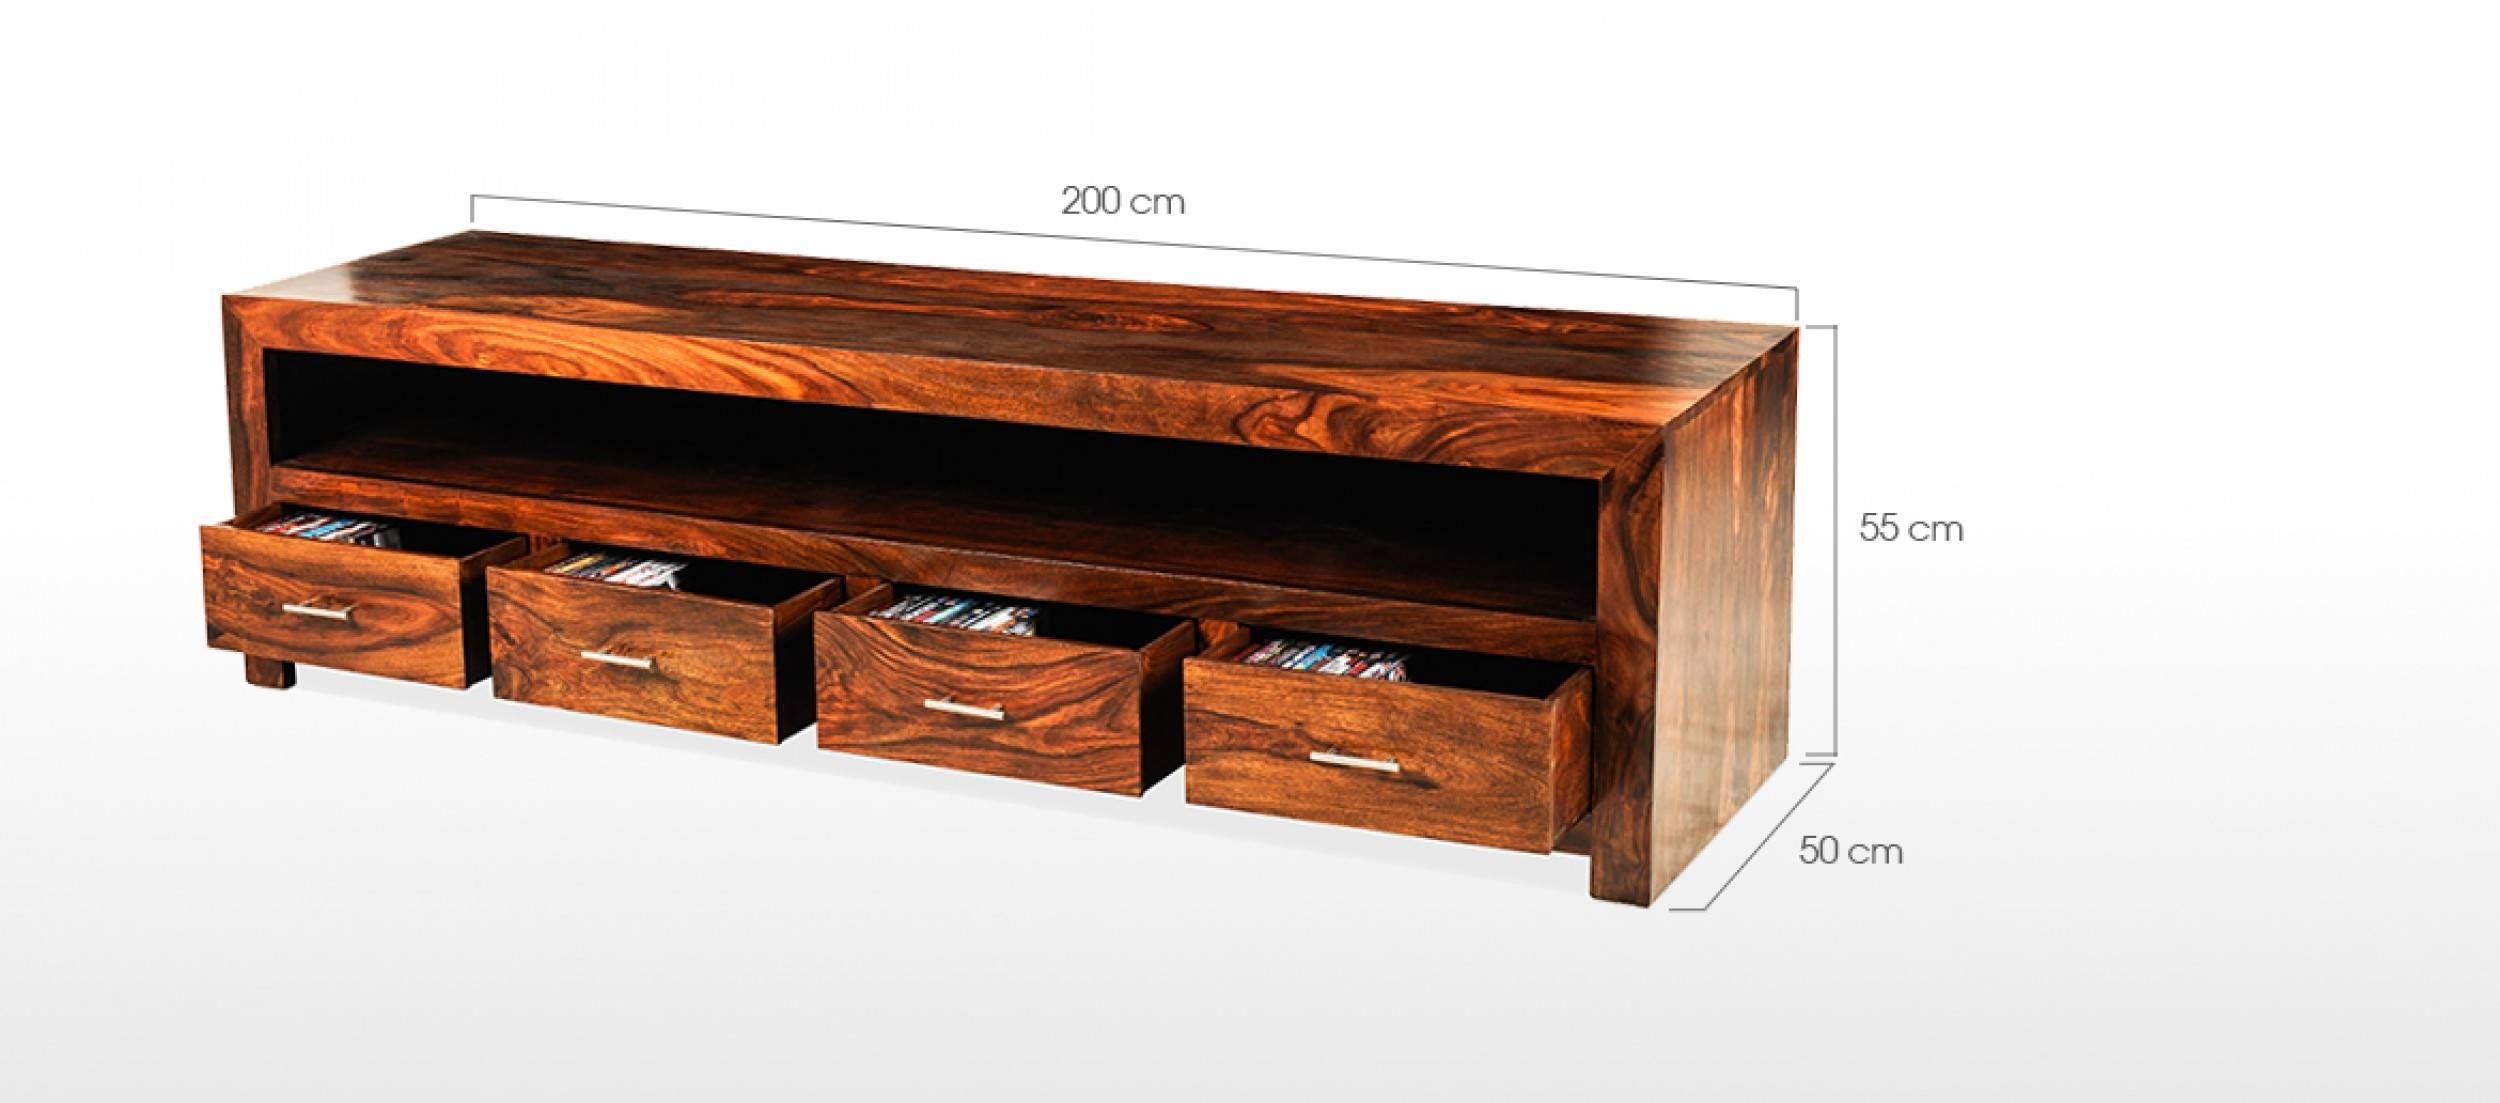 Cube Sheesham Long Plasma Tv Cabinet | Quercus Living With Plasma Tv Stands (View 15 of 15)